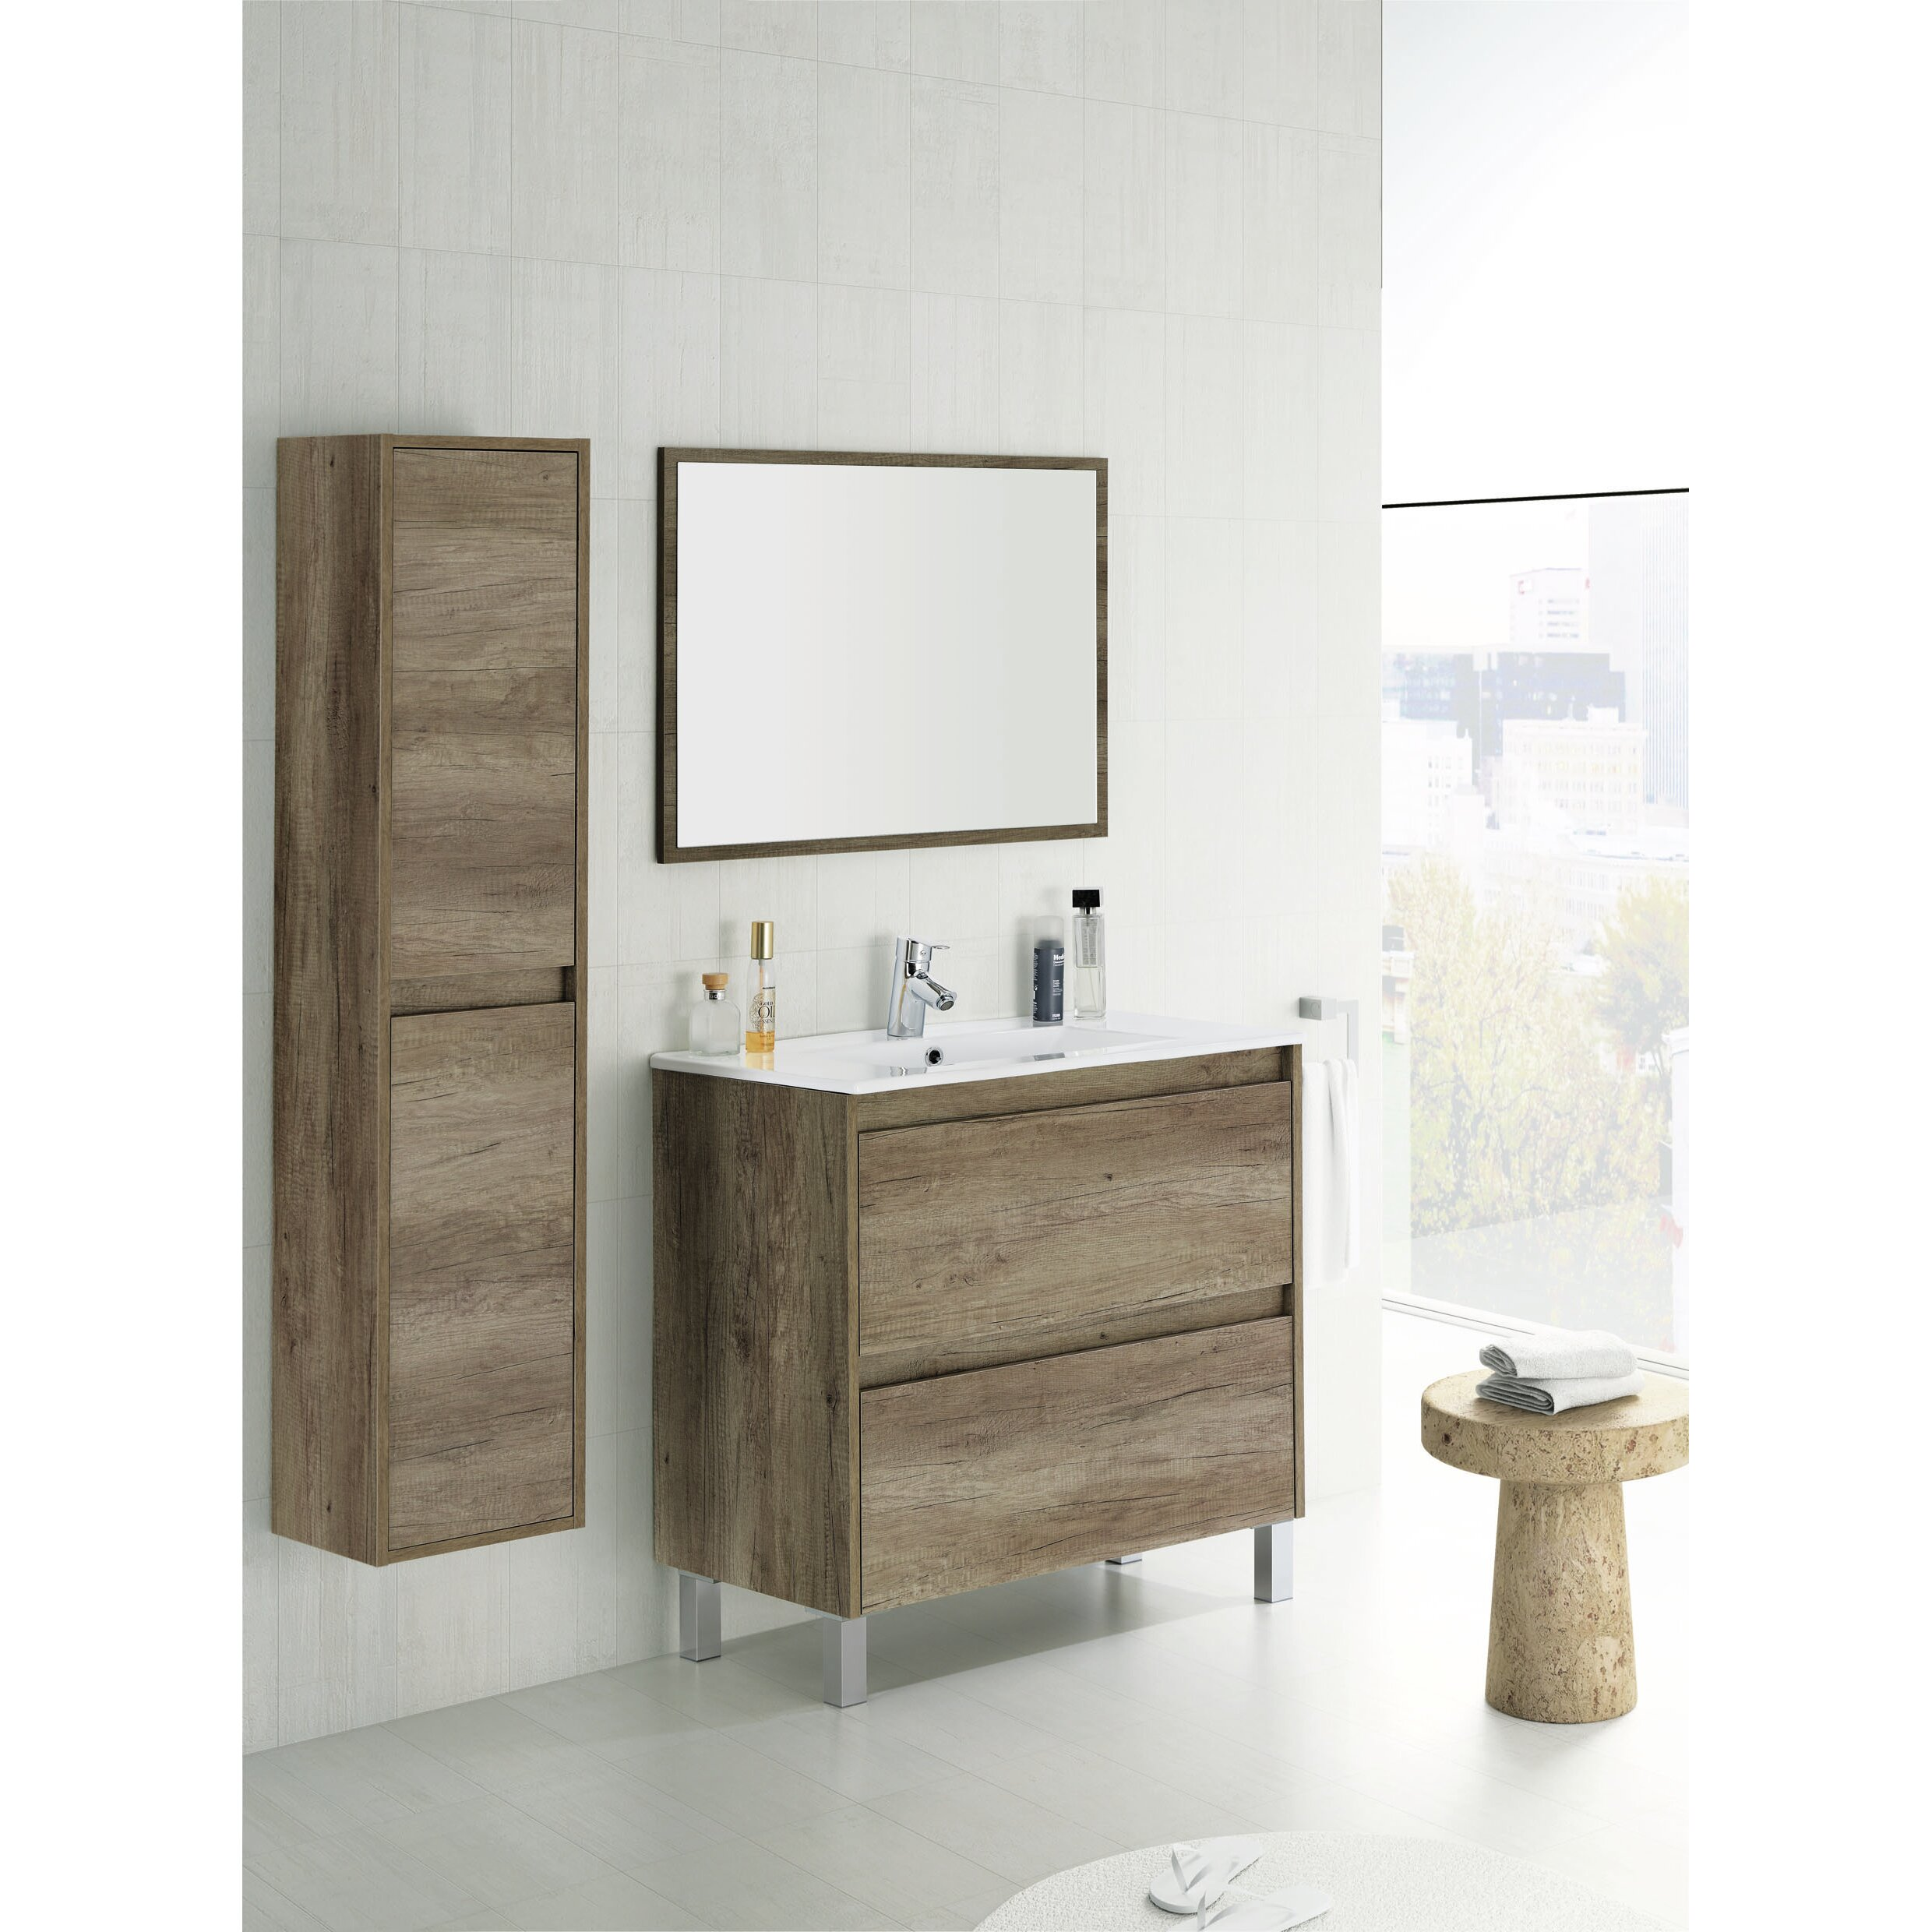 Home etc dakota 30 x 140 cm freestanding tall bathroom - Wayfair furniture bathroom vanities ...